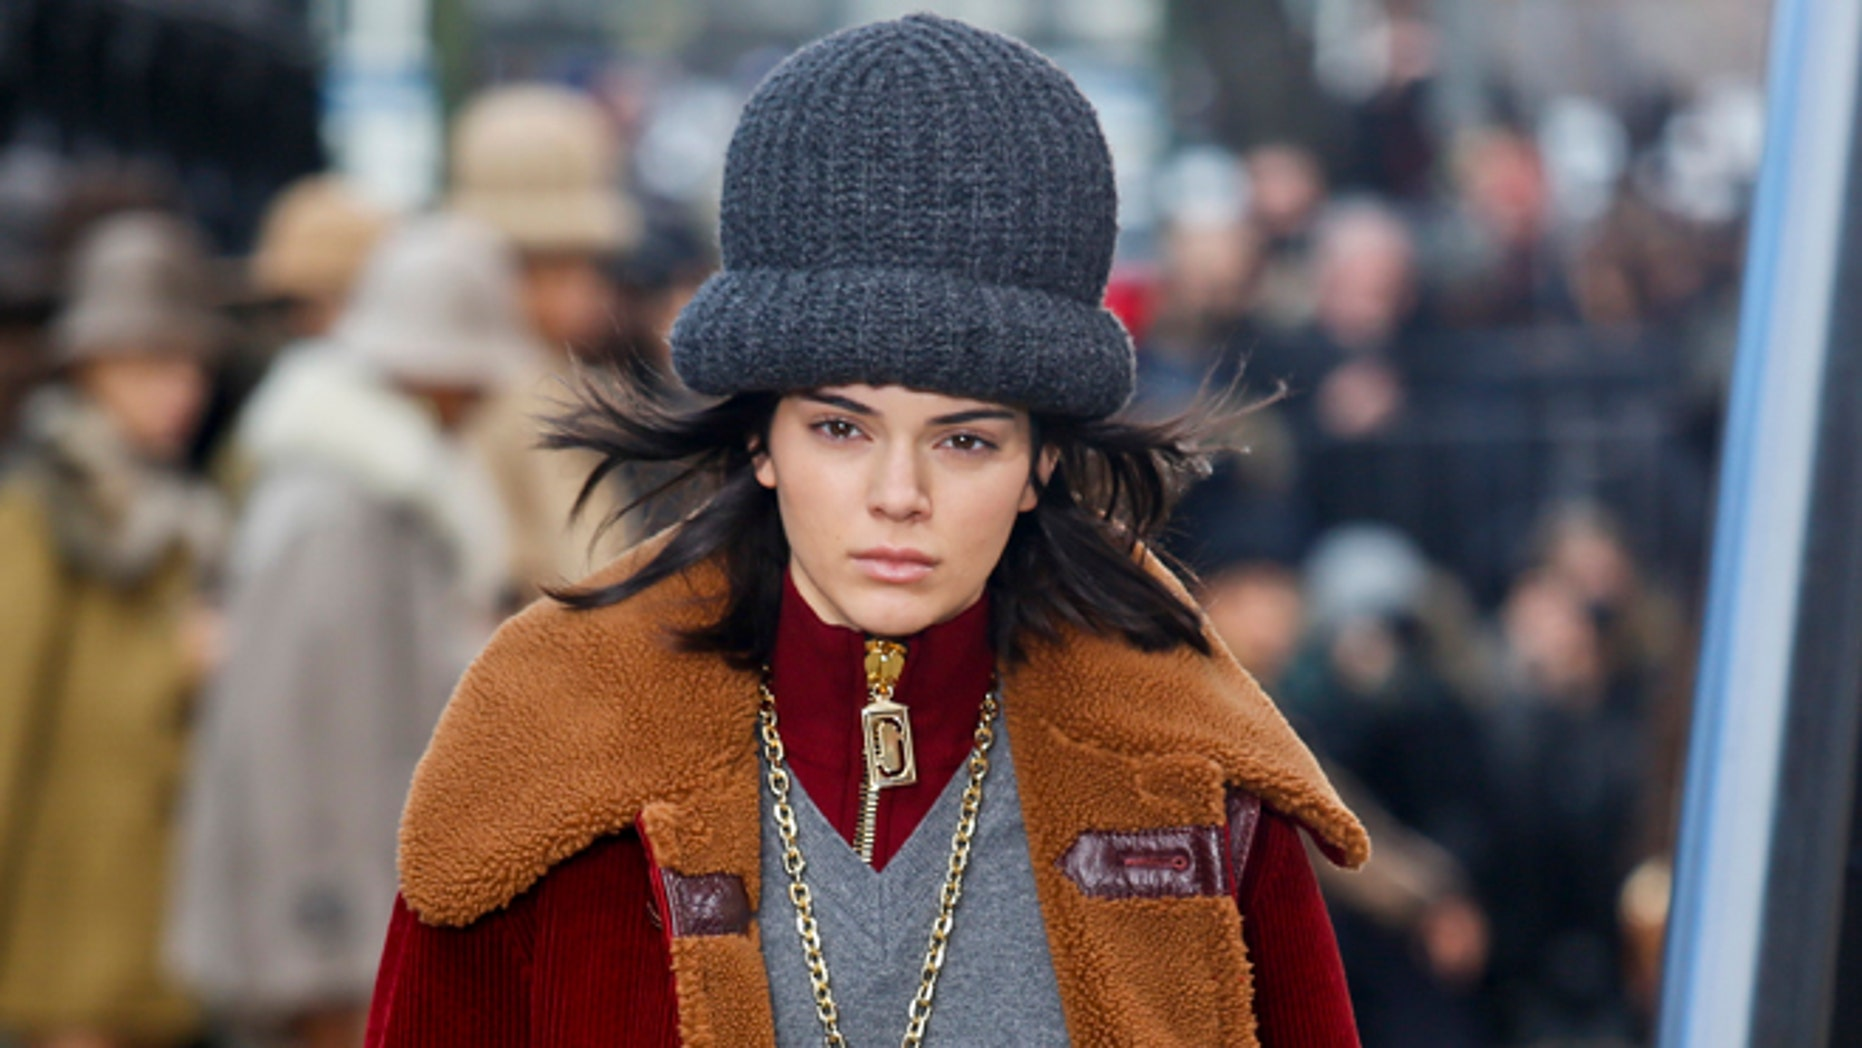 Kendall Jenner models an outfit from the Marc Jacobs collection during NY Fashion Week.